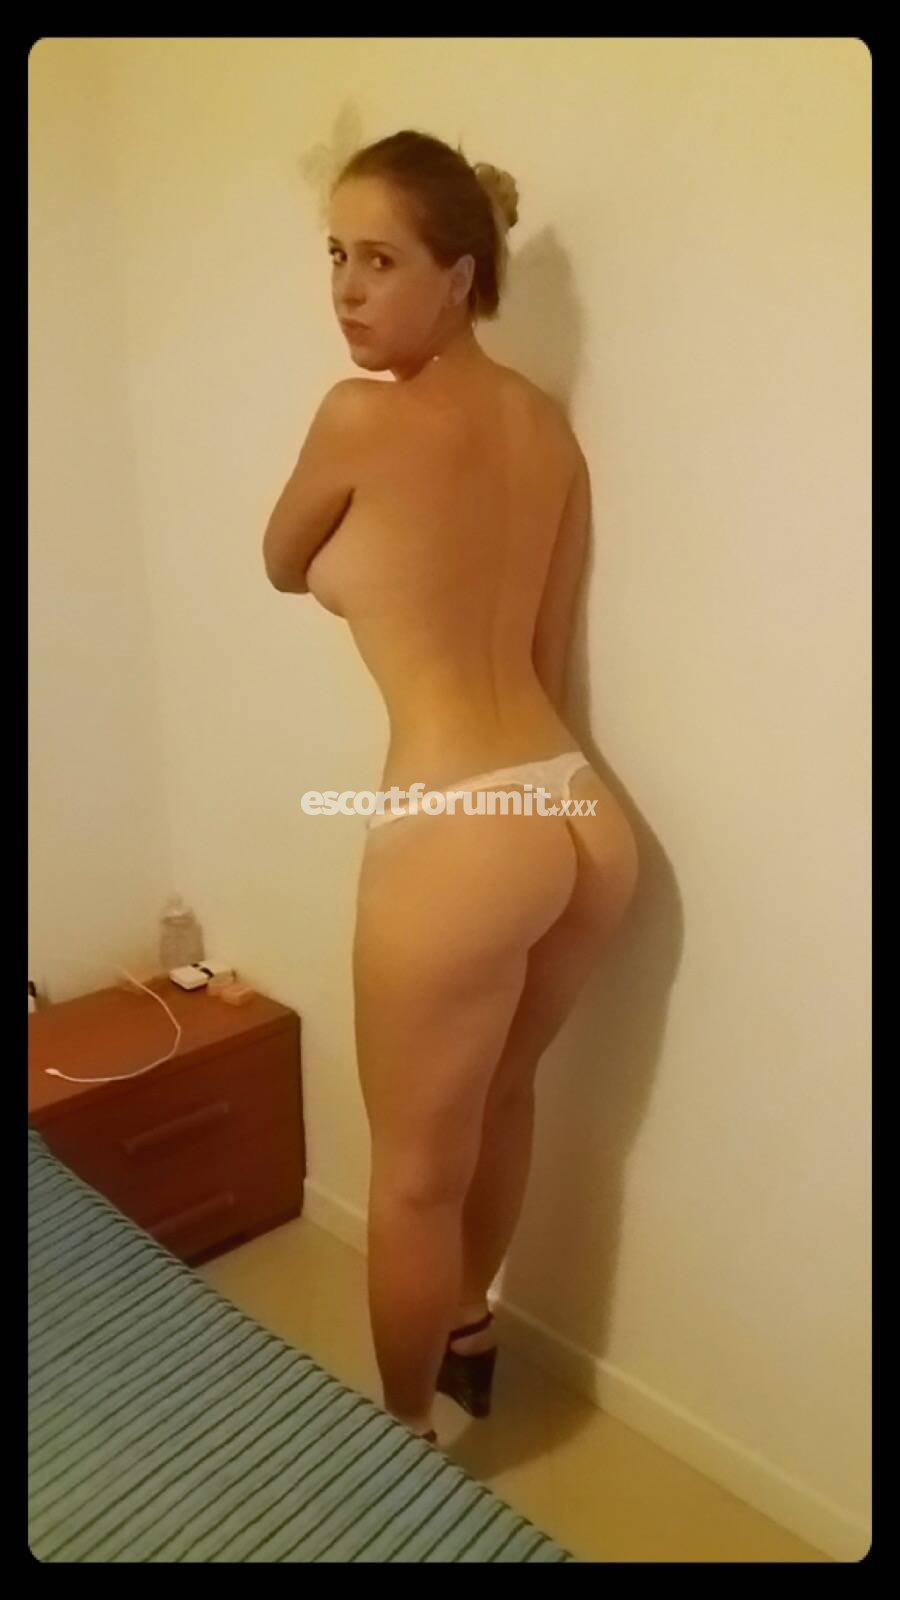 gay neri superdotati escort vicenza centro